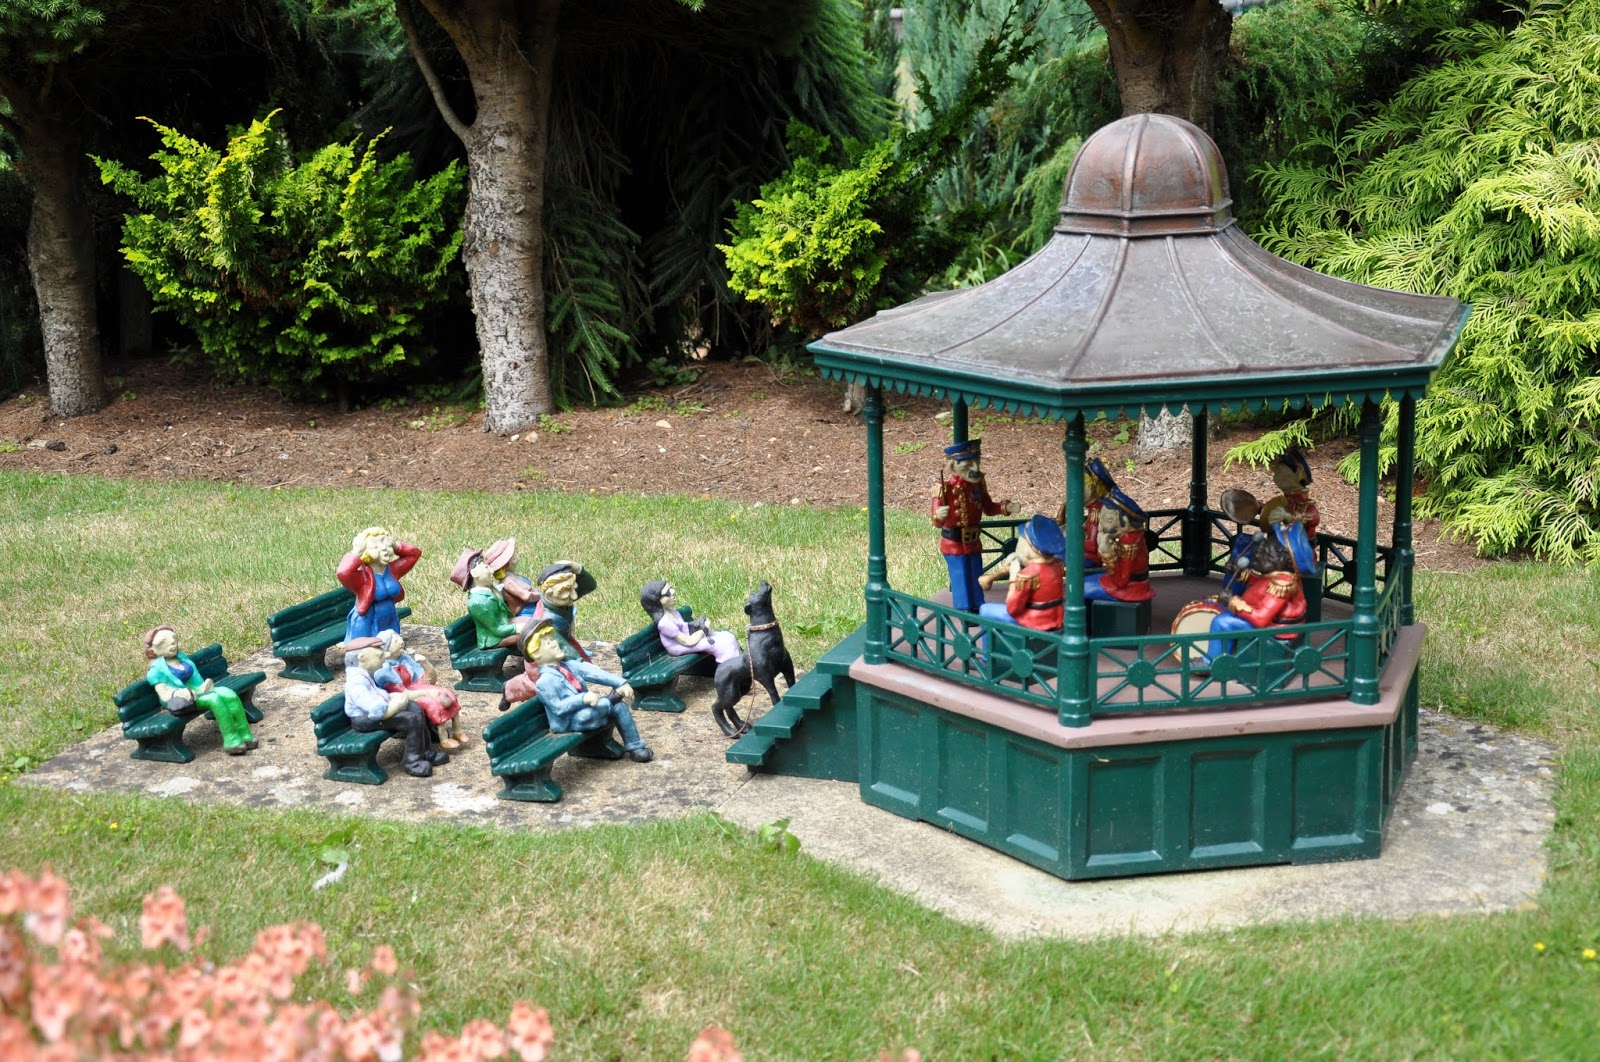 Concert, Model Village, Godshill, Isle of Wight, UK